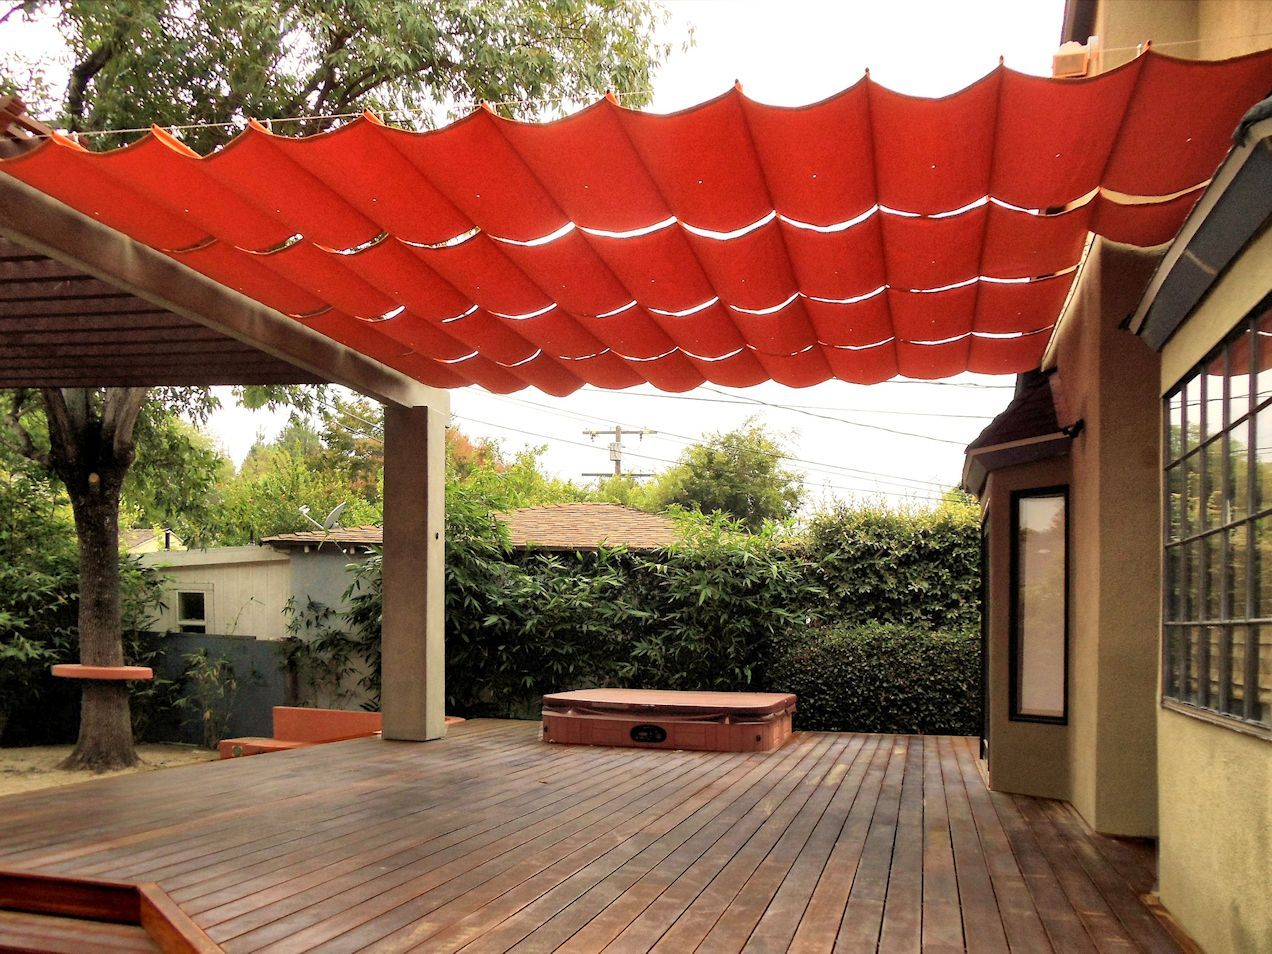 Best Retractable Patio Awning Designs, DIY Makeover Ideas And Most Popular  Brands And Models. | DIY | Pinterest | Patios, Retractable Awning And  Decking